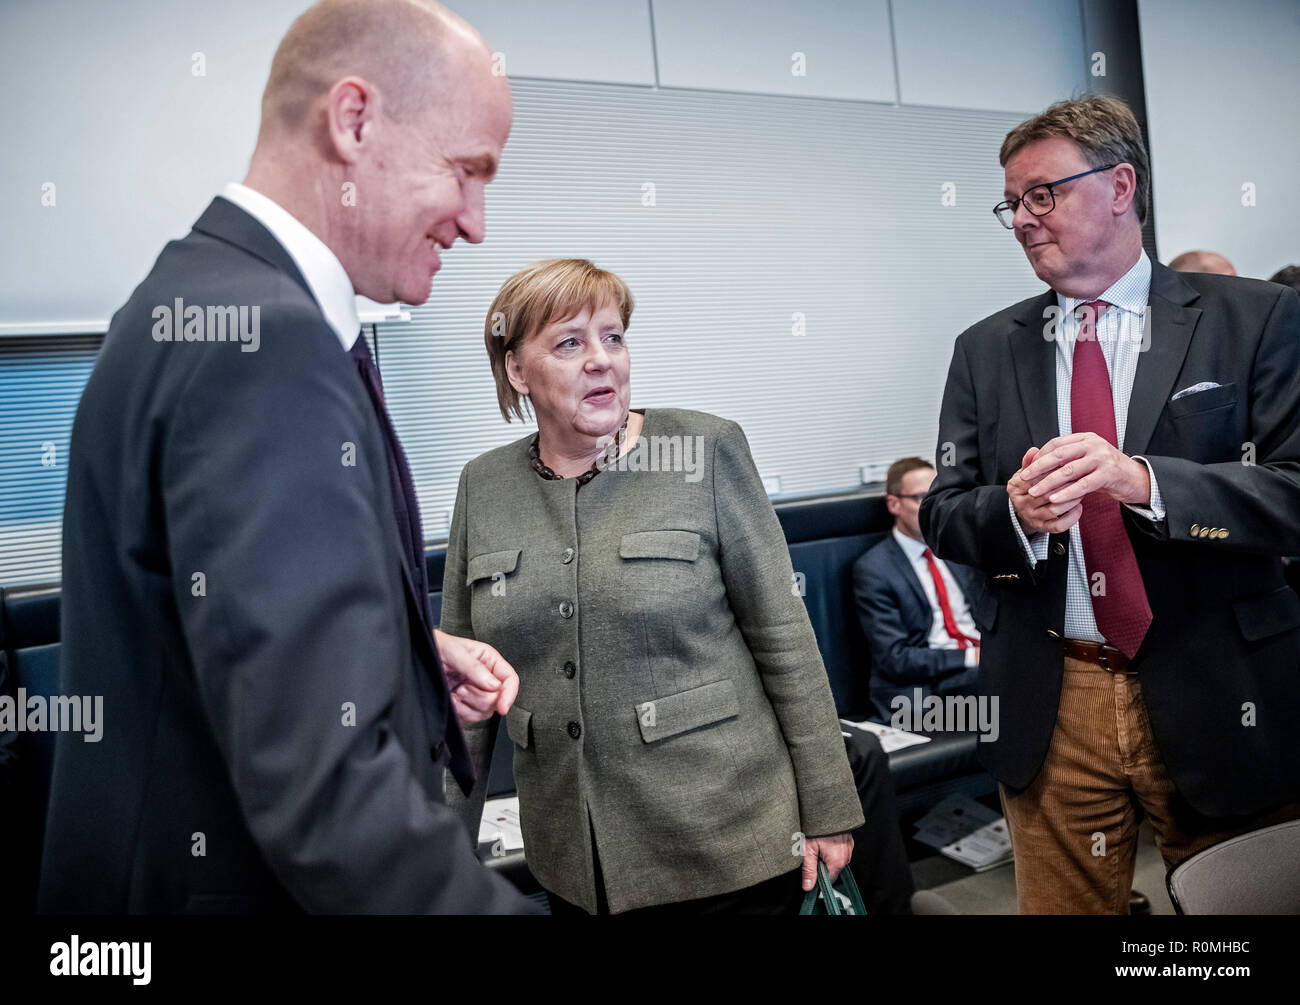 Berlin, Germany. 06th Nov, 2018. Chancellor Angela Merkel (CDU) comes to the parliamentary session between Ralph Brinkhaus (CDU, l), leader of the CDU/CSU parliamentary group in the Bundestag, and Michael Grosse-Brömer (CDU, r), first parliamentary director of the CDU/CSU parliamentary group in the Bundestag. Credit: Michael Kappeler/dpa/Alamy Live News - Stock Image